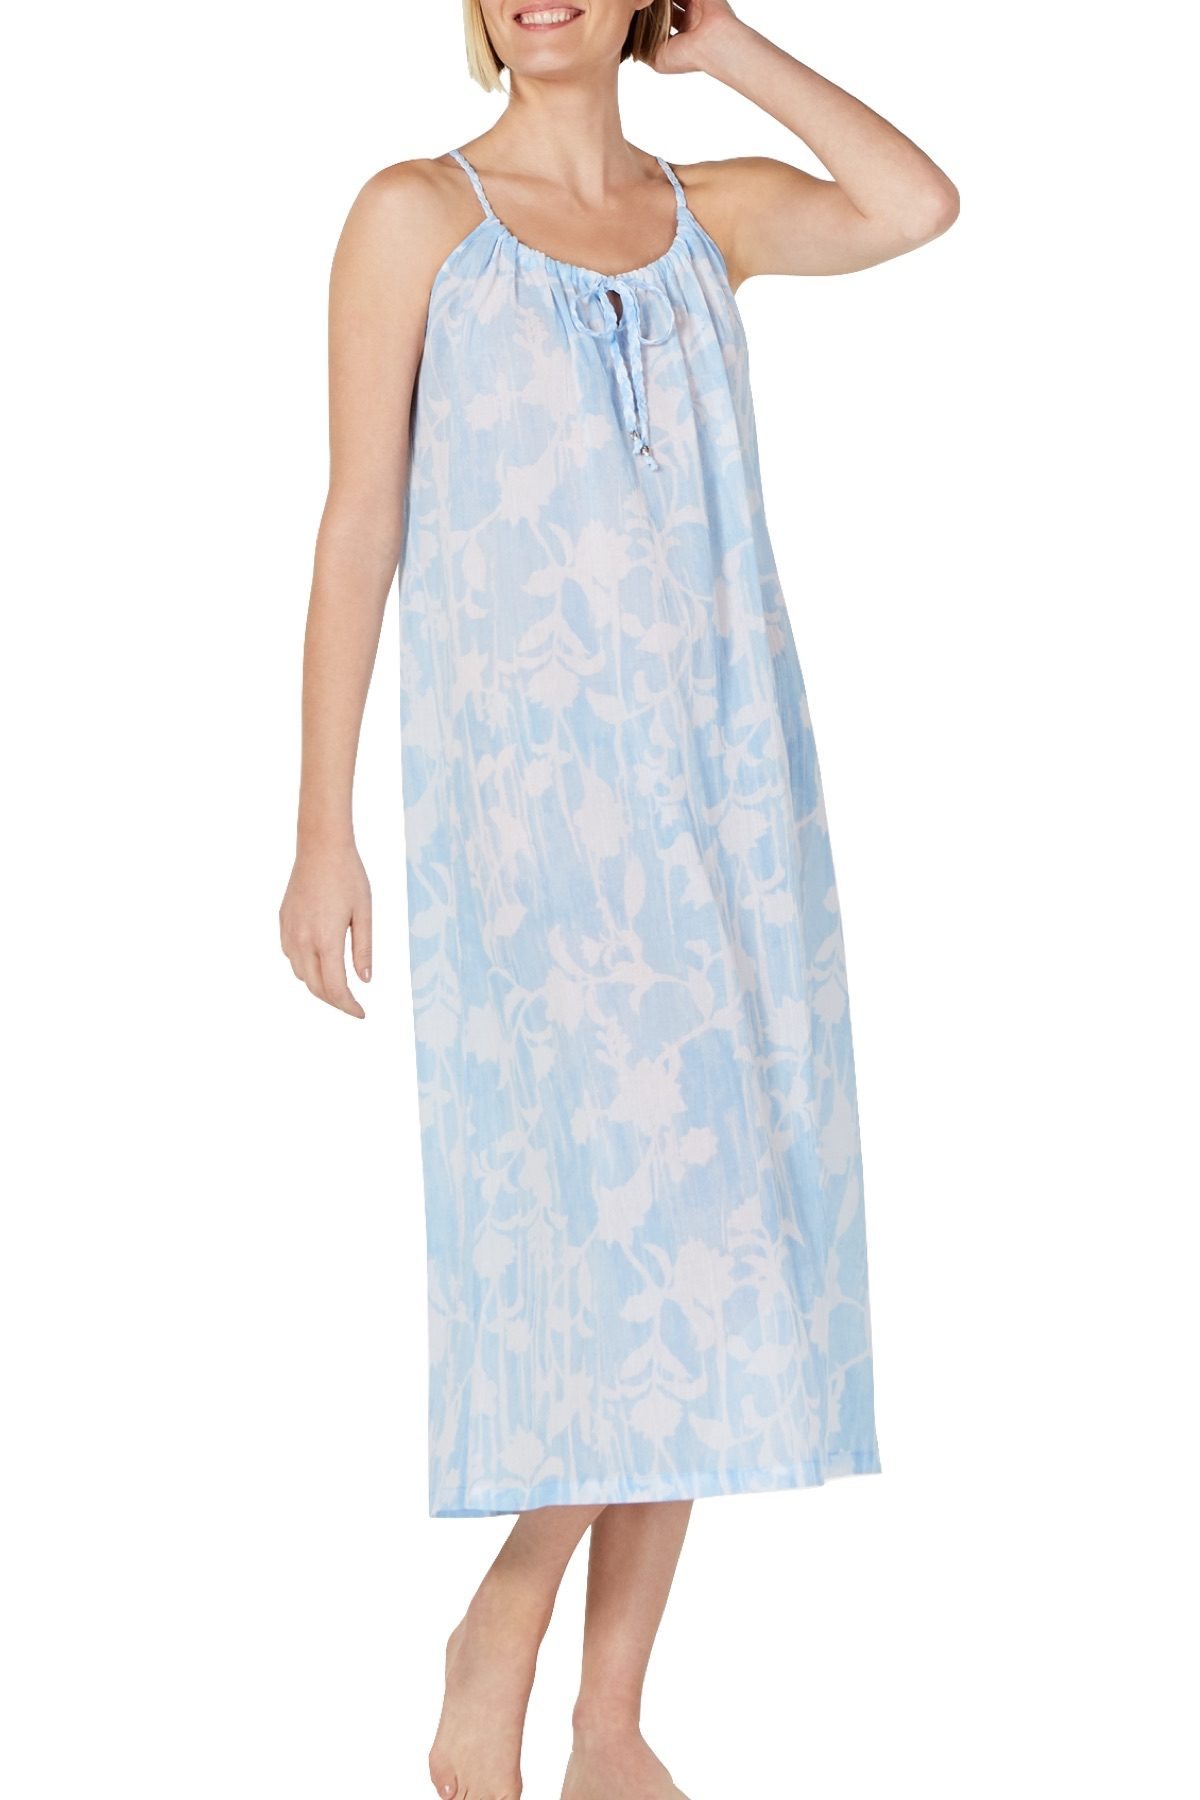 Charter Club Intimates Blue Watercolor Printed Cotton Nightgown